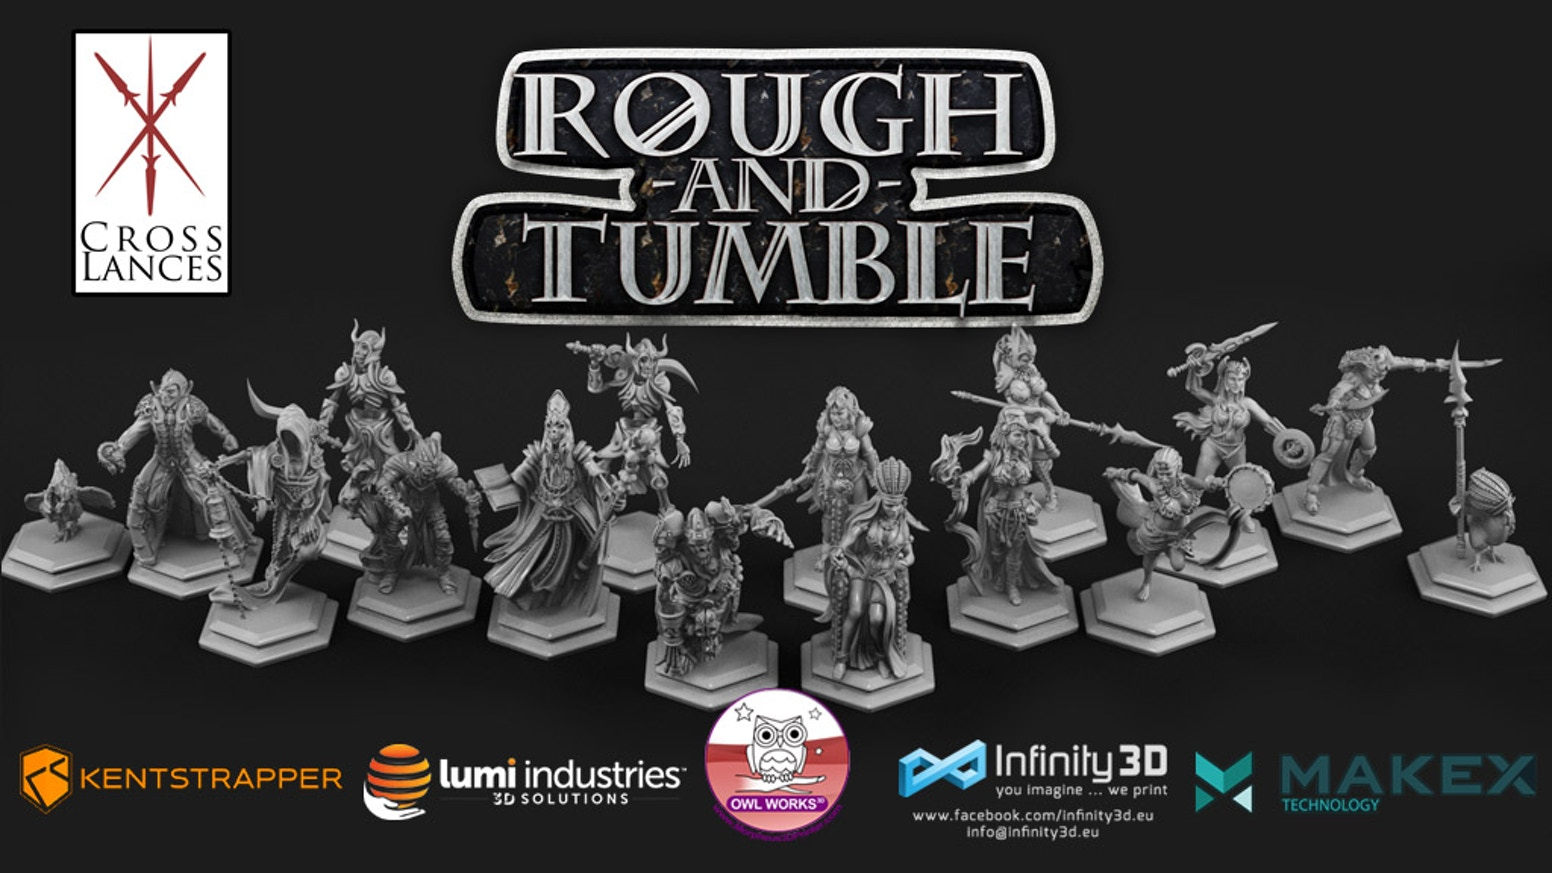 Rough-and-Tumble it's a board game for your 3d printer.